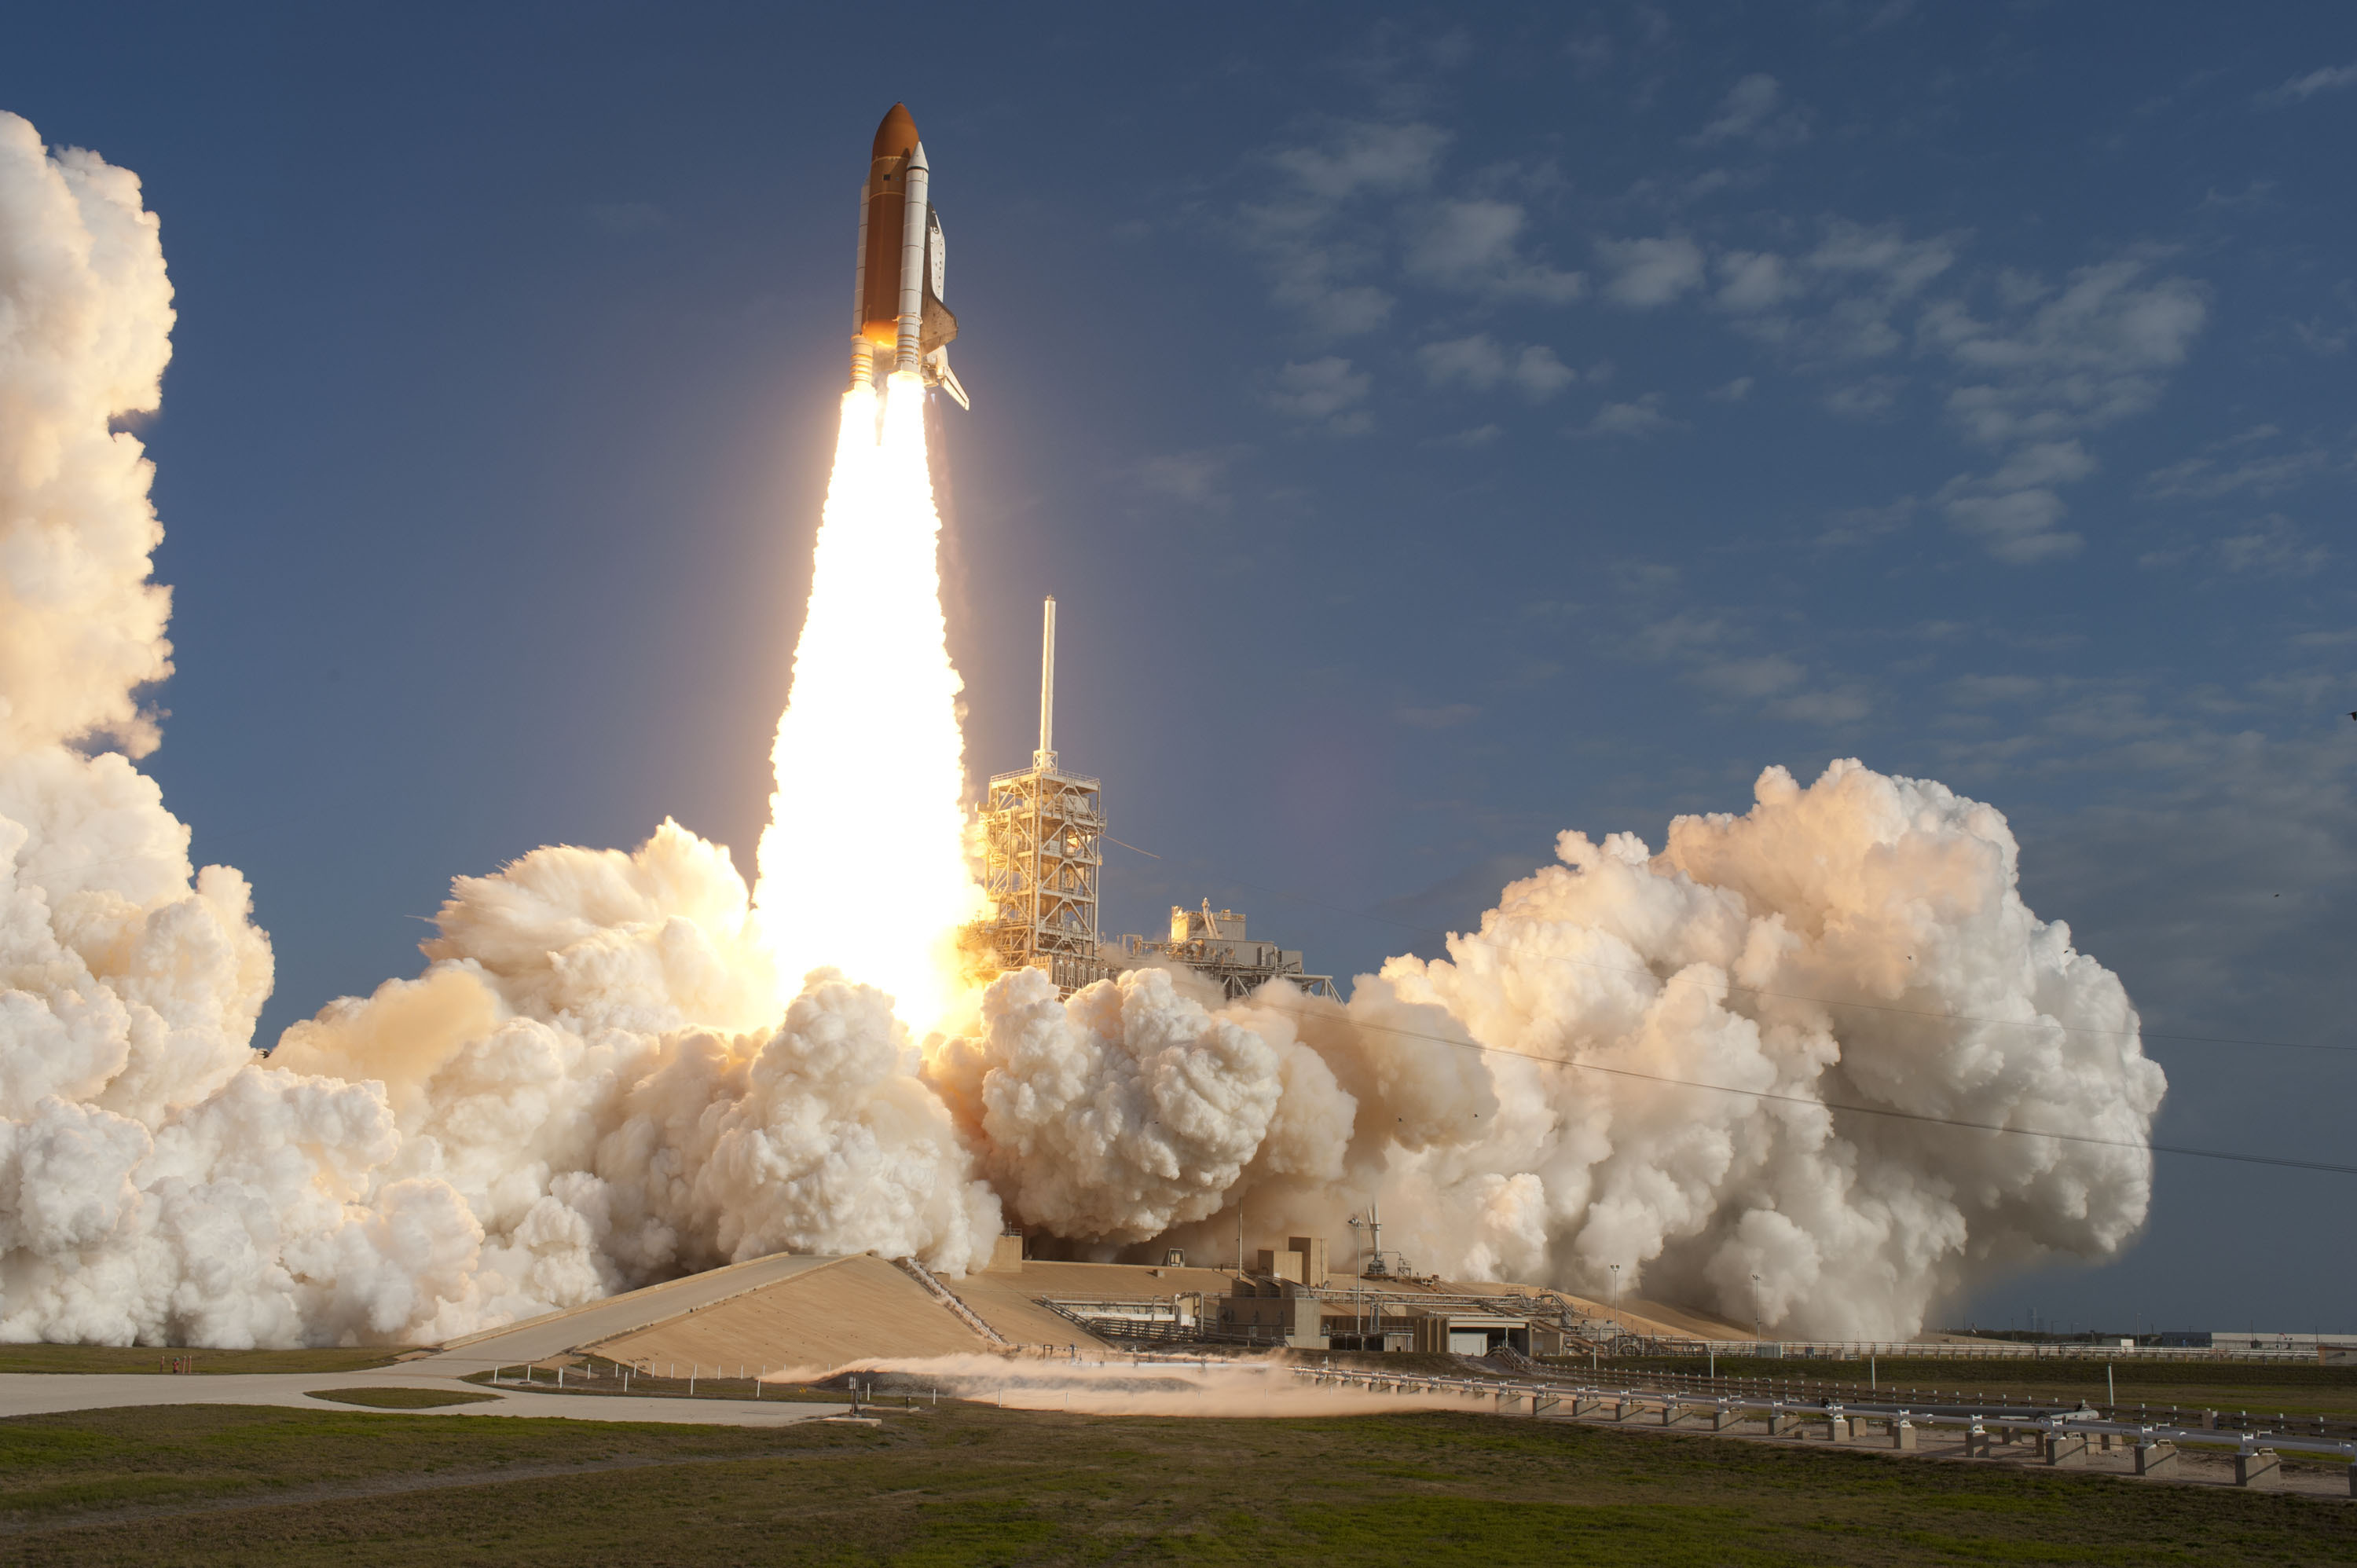 Discovery Spent Entire Year in Orbit